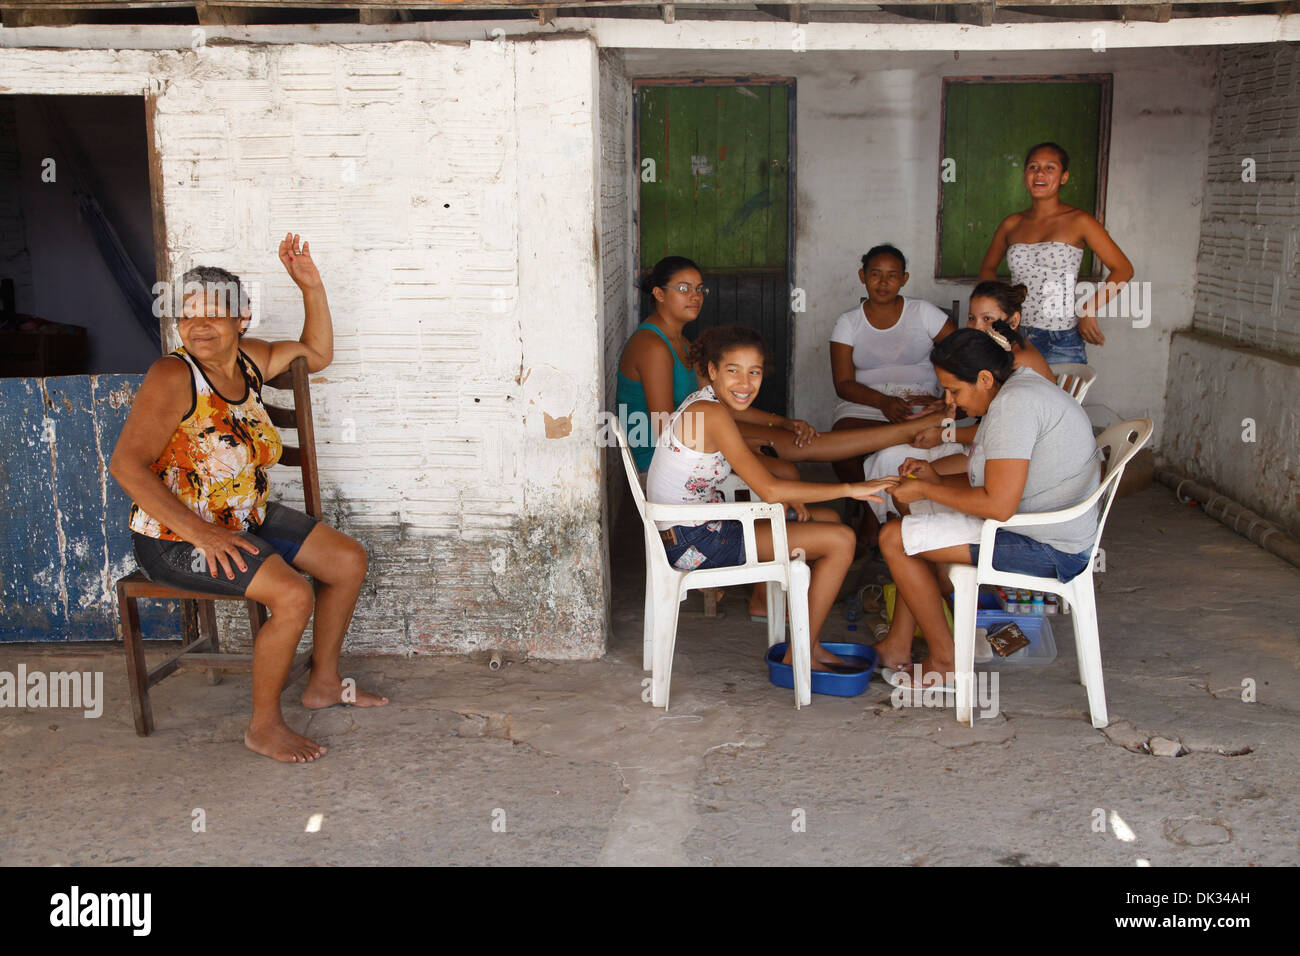 Local women doing their nails in the house shade, Cumbuco, Fortaleza district, Brazil. - Stock Image